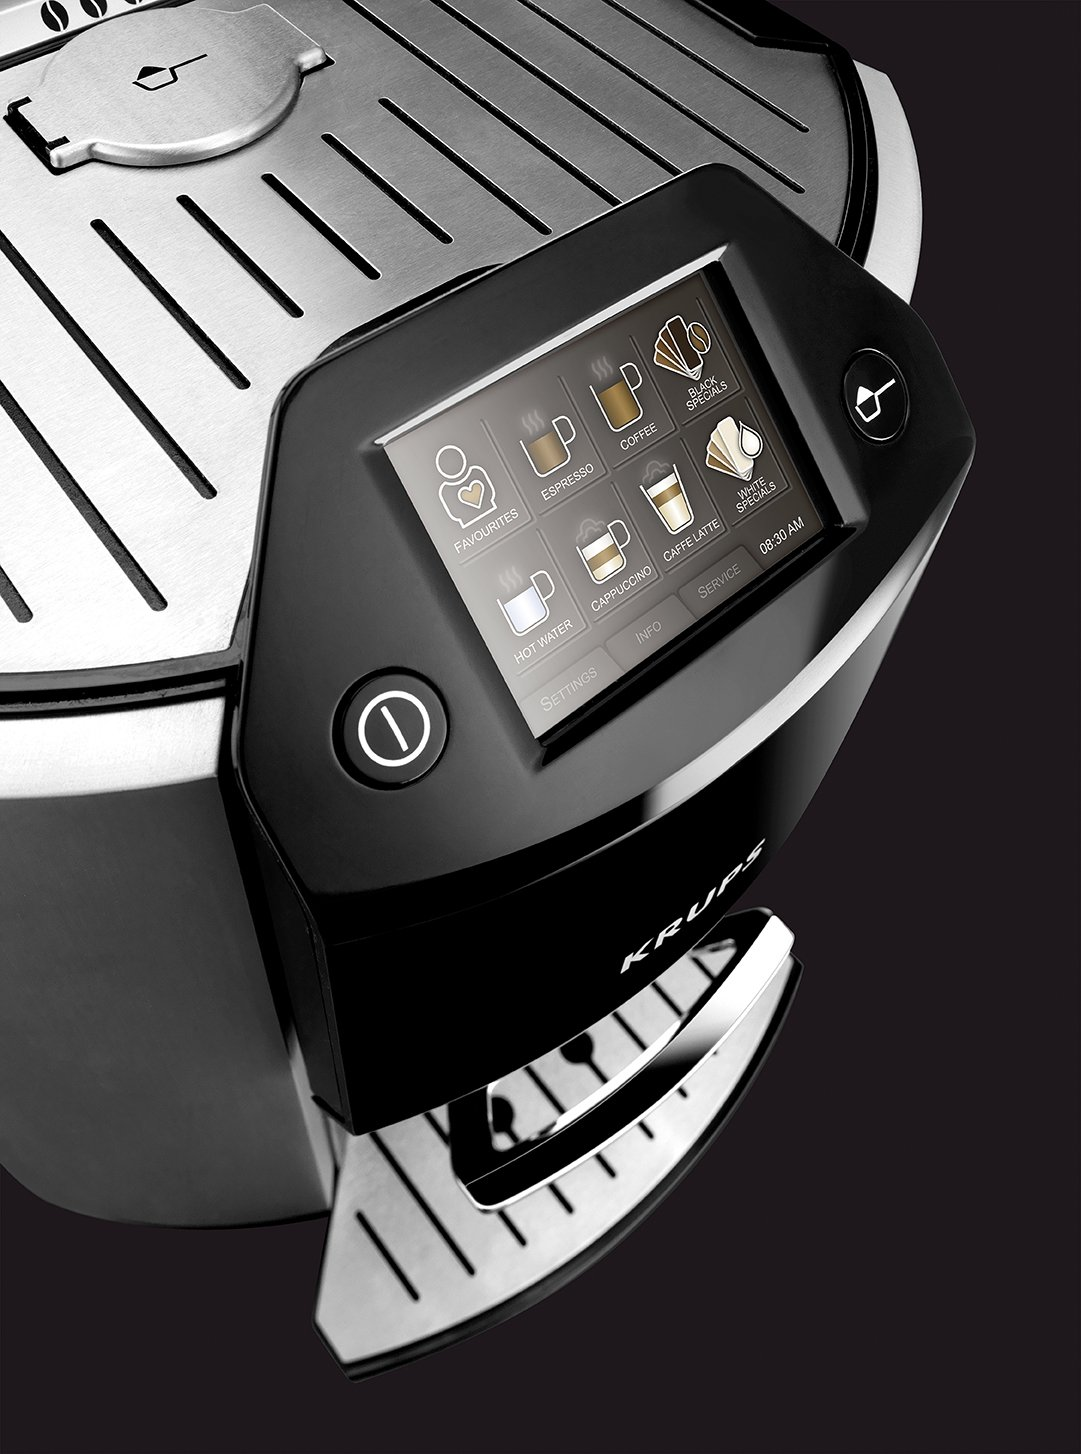 Krups-EA9010-Kaffee-Vollautomat-One-Touch-Funktion-17-L-15-bar-Touchscreen-Display-Milchbehlter-silber